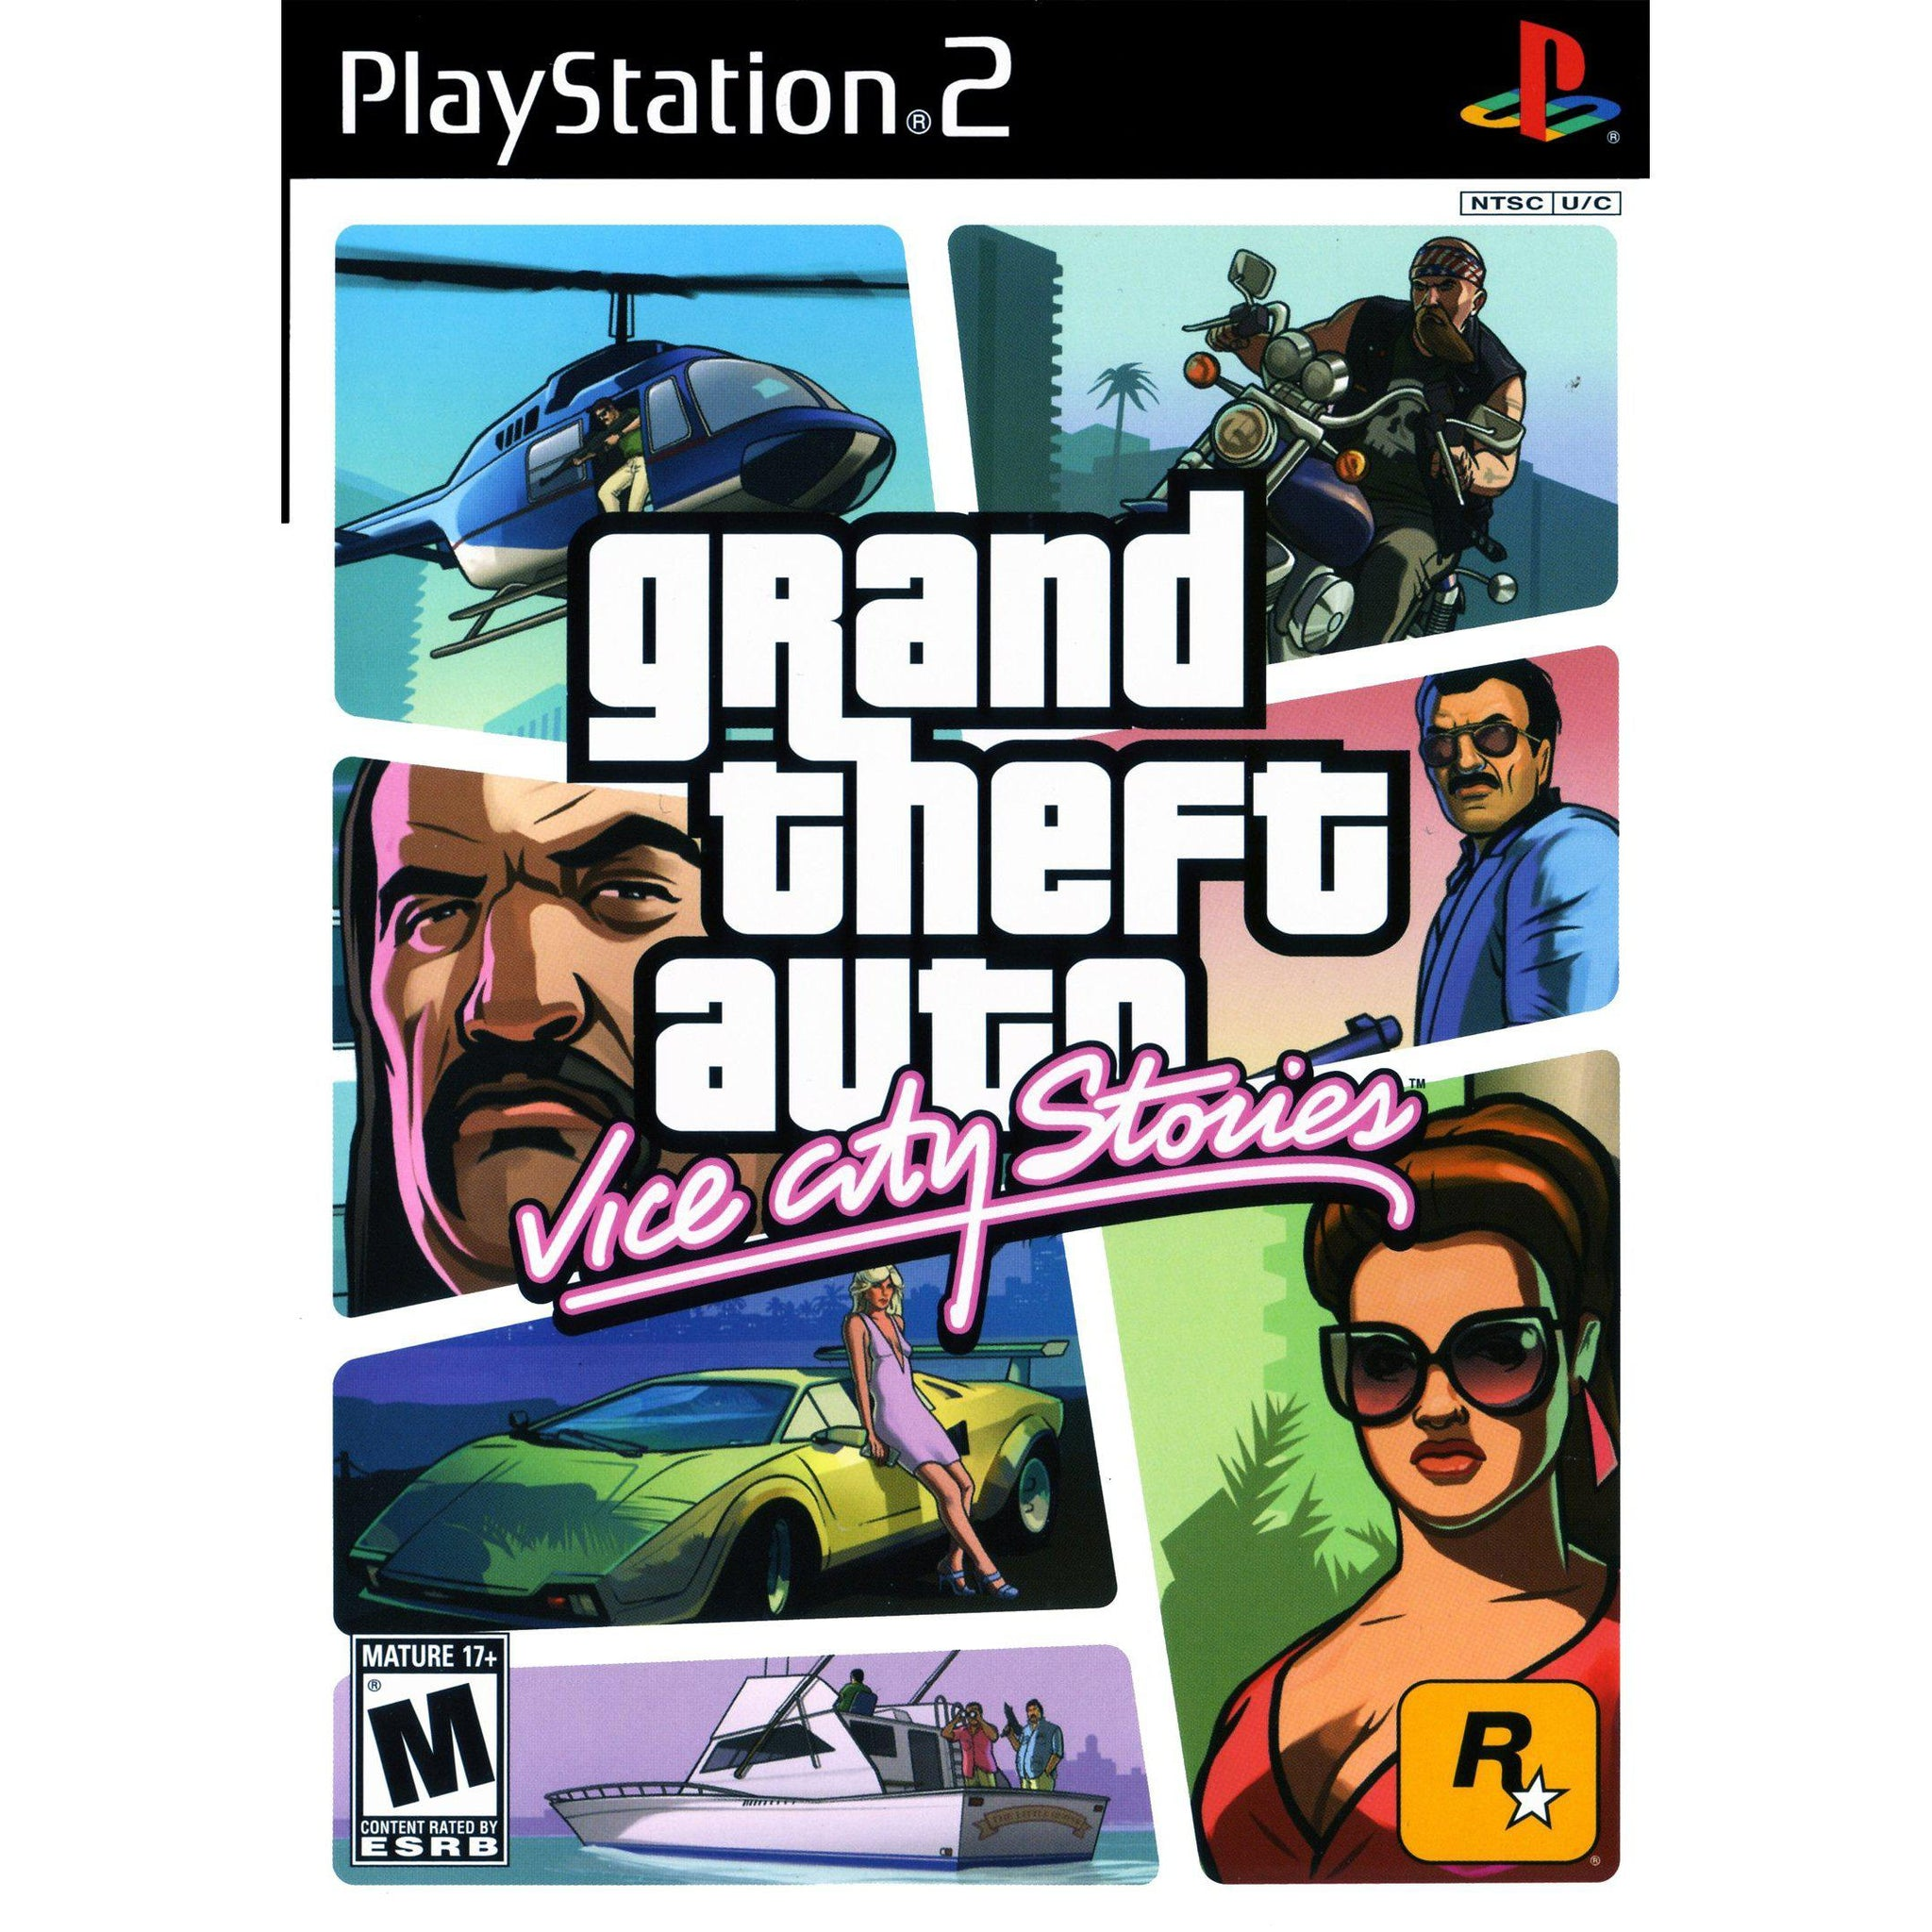 Grand Theft Auto: Vice City Stories - PlayStation 2 (PS2) Game Complete - YourGamingShop.com - Buy, Sell, Trade Video Games Online. 120 Day Warranty. Satisfaction Guaranteed.